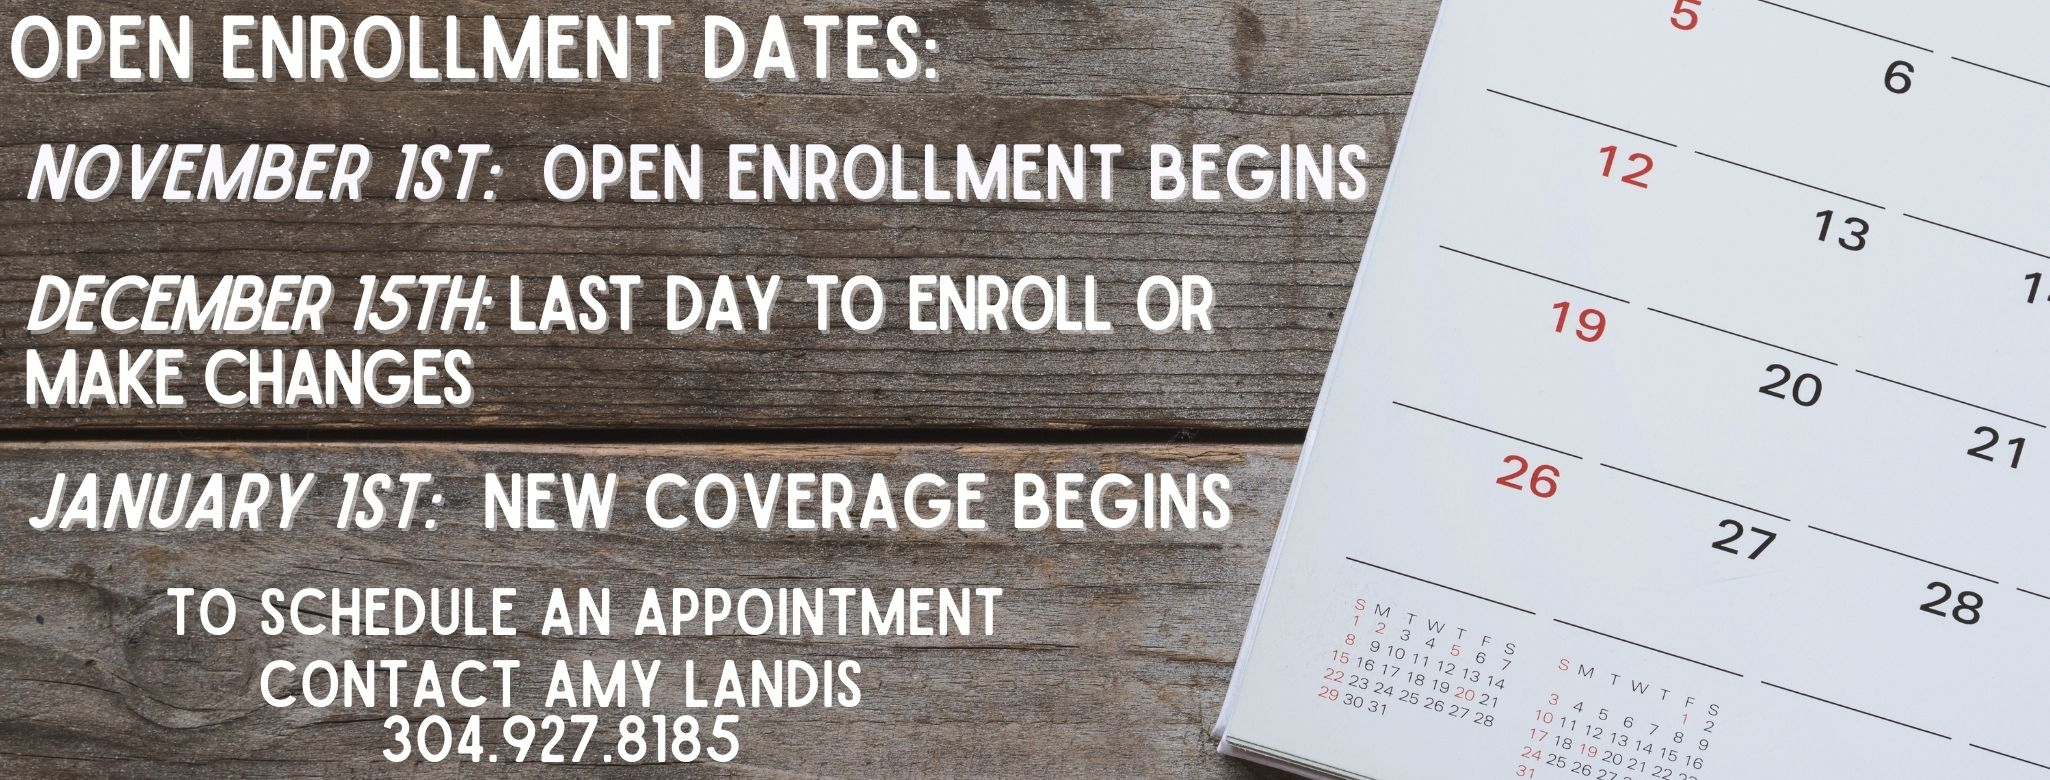 Marketplace Open Enrollment